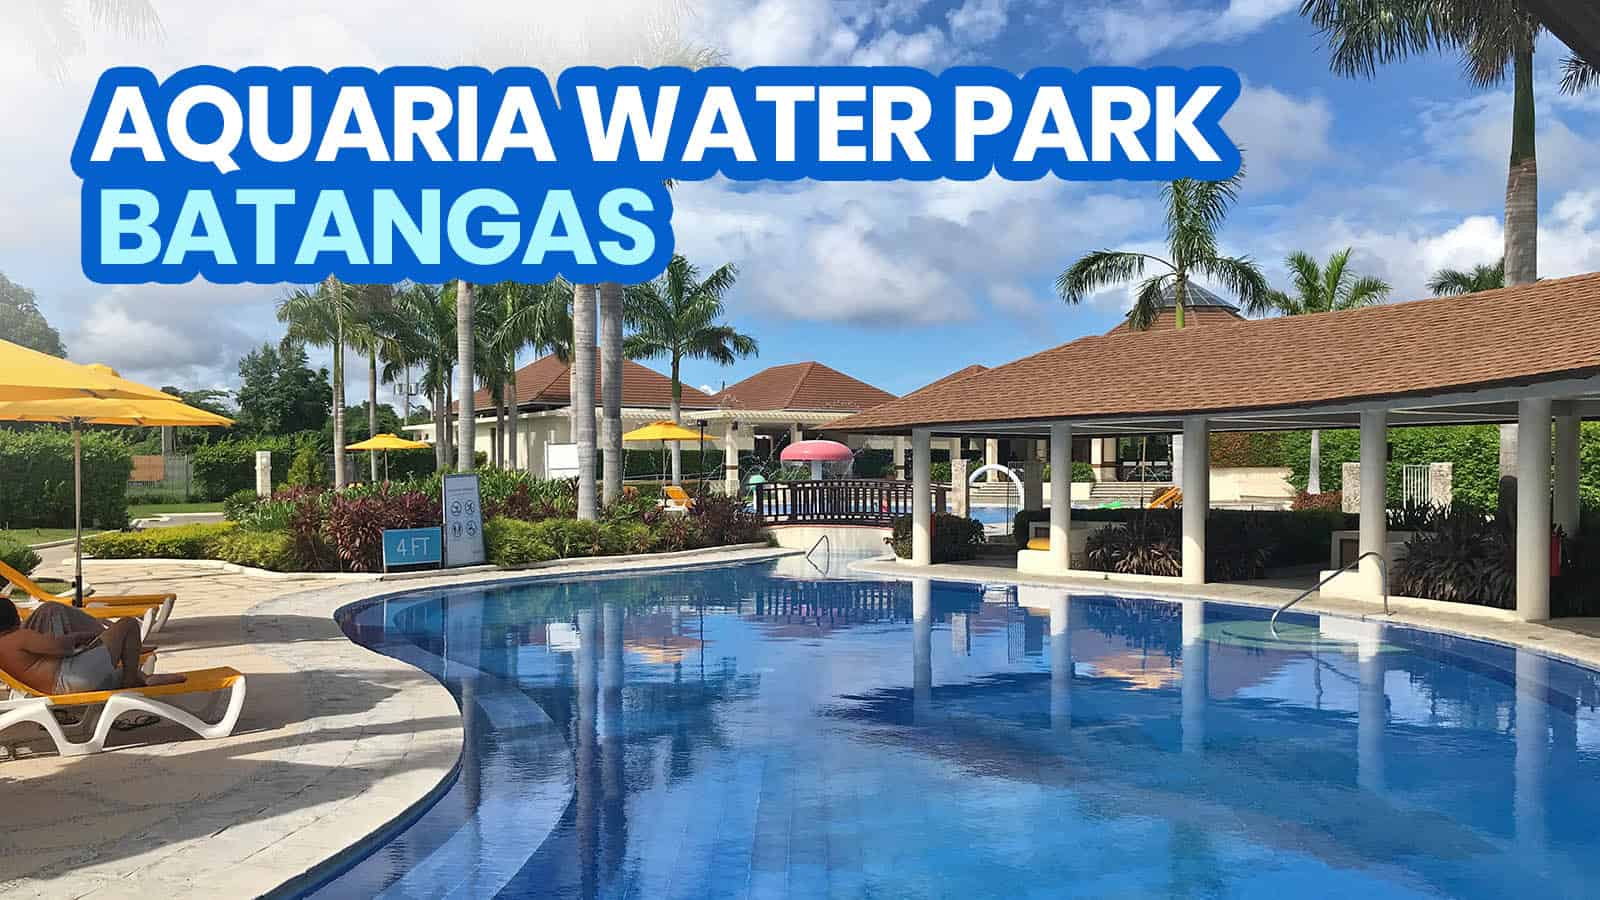 2021 AQUARIA WATER PARK, BATANGAS: New Normal Travel Guide + Requirements